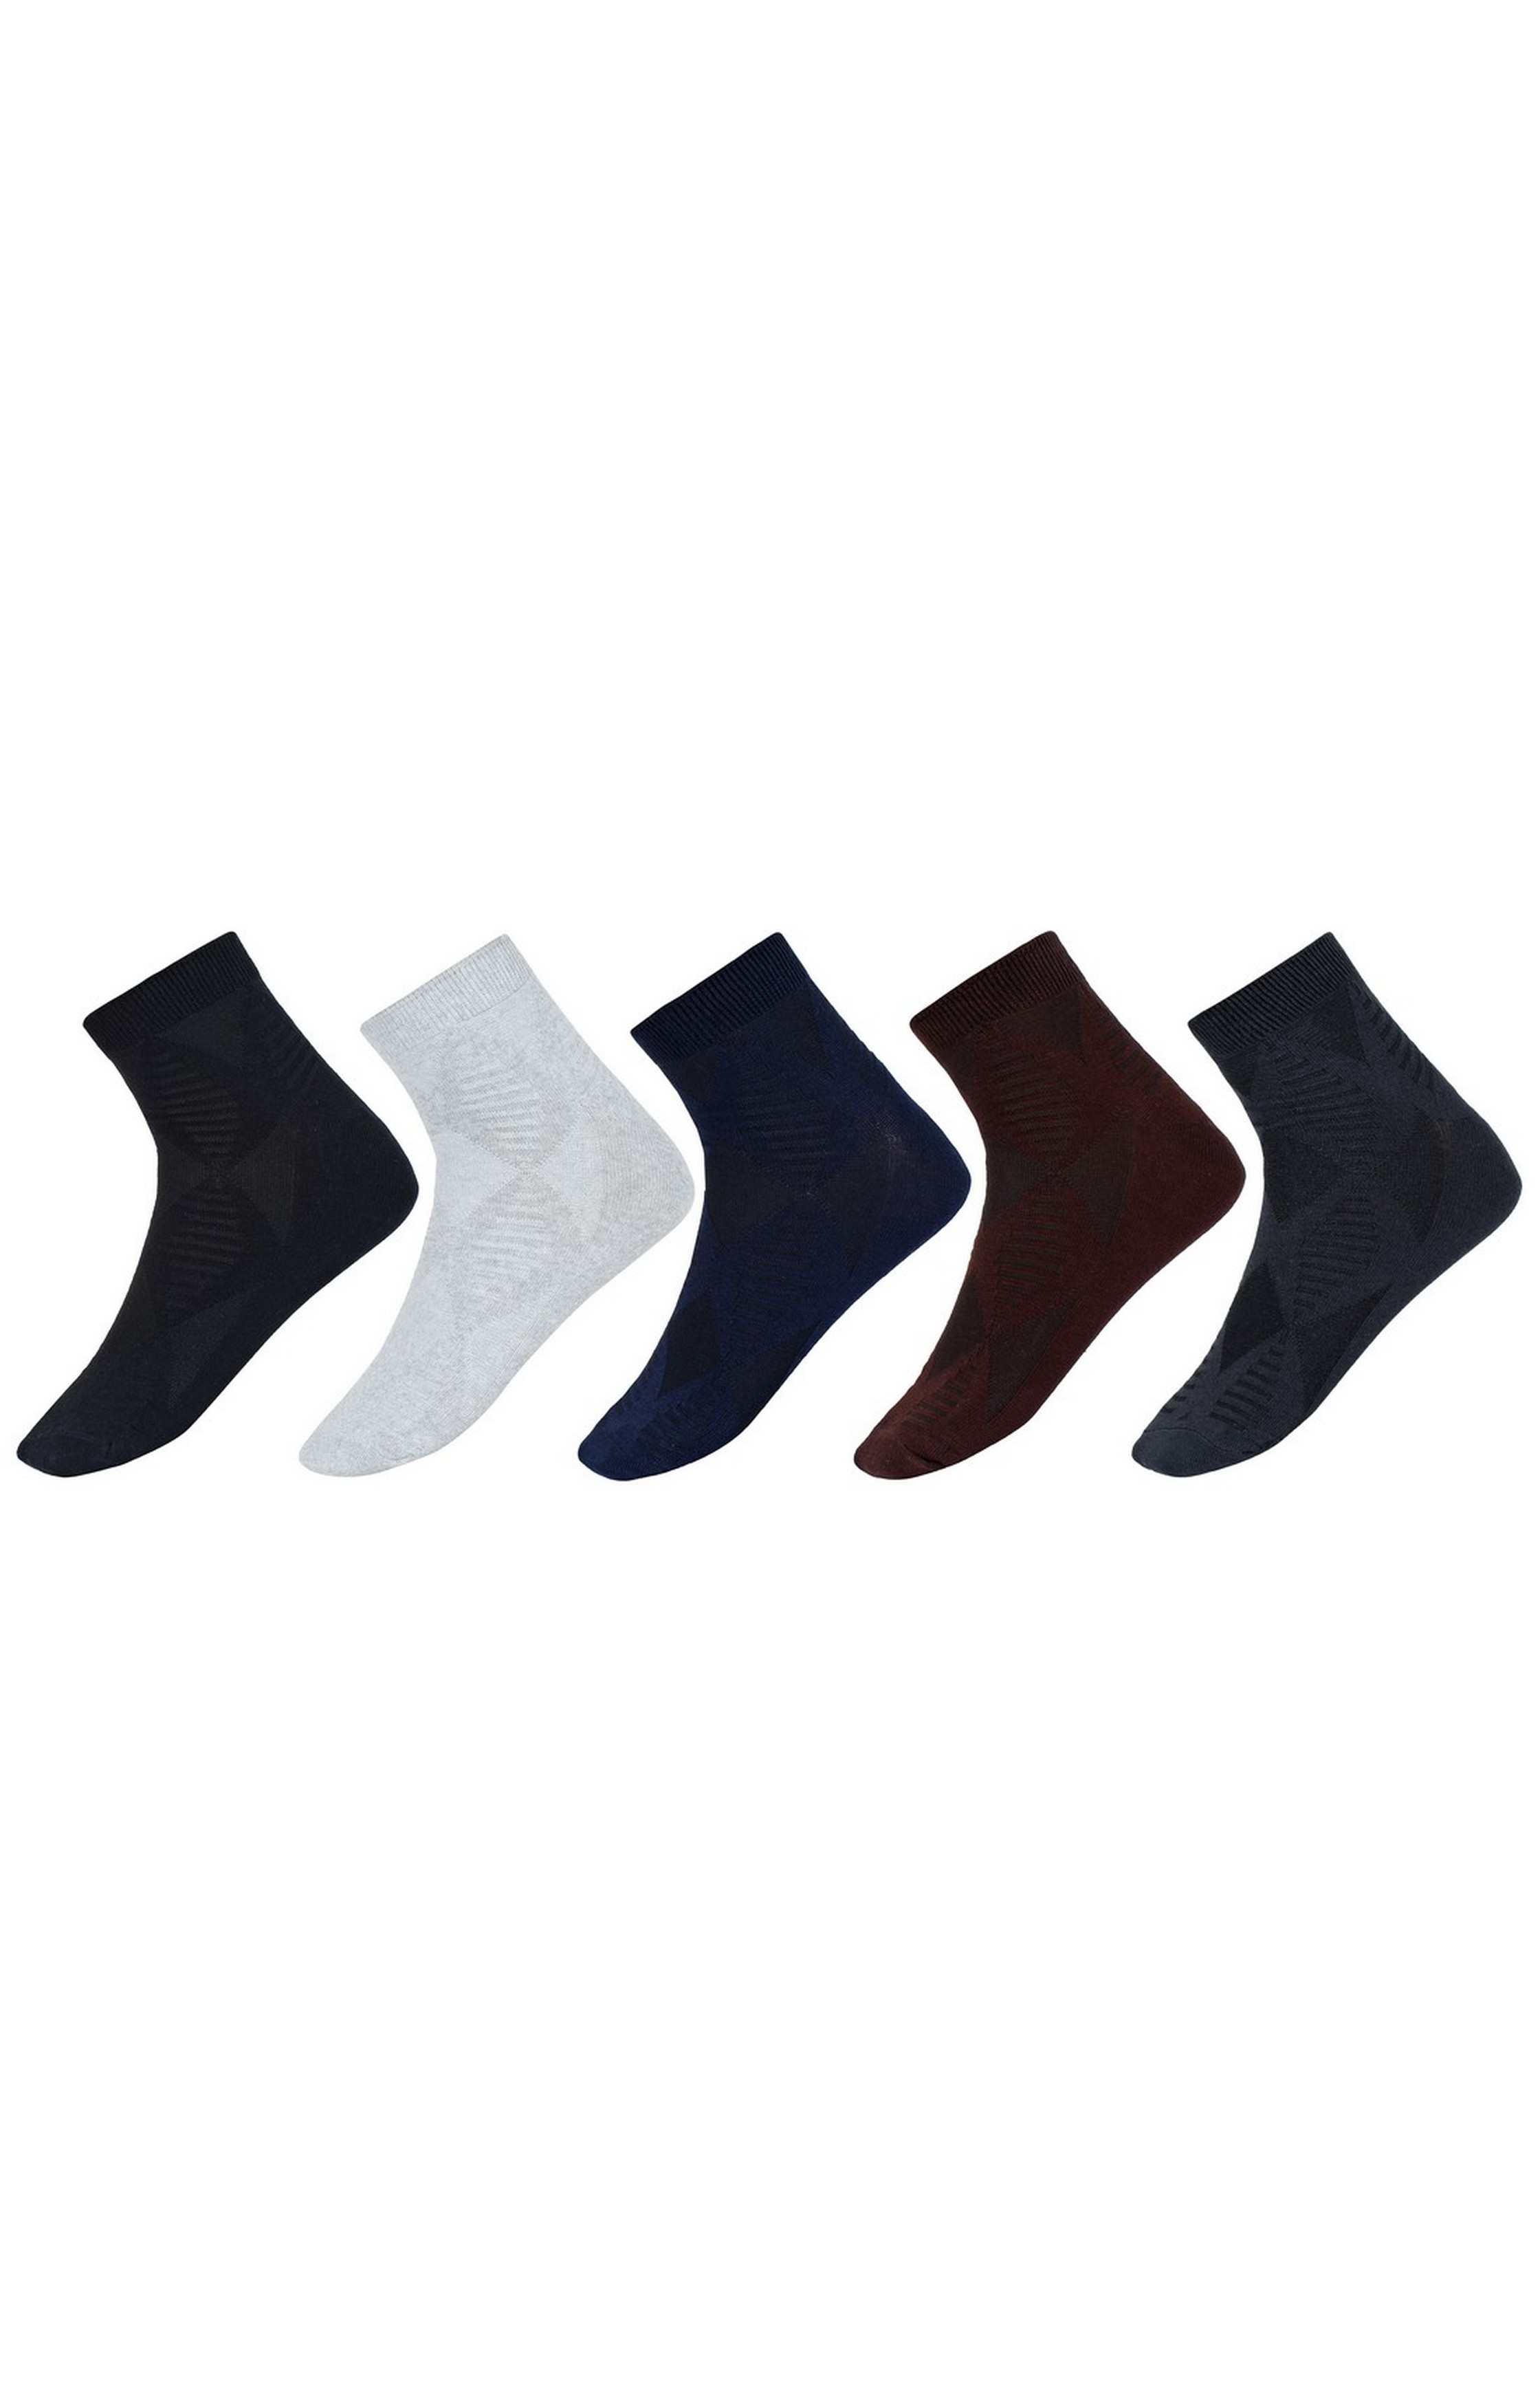 SIDEWOK | SIDEWOK Ankle Length Solid Multicolour Cotton Socks for Men (Pack of 5 Pairs)